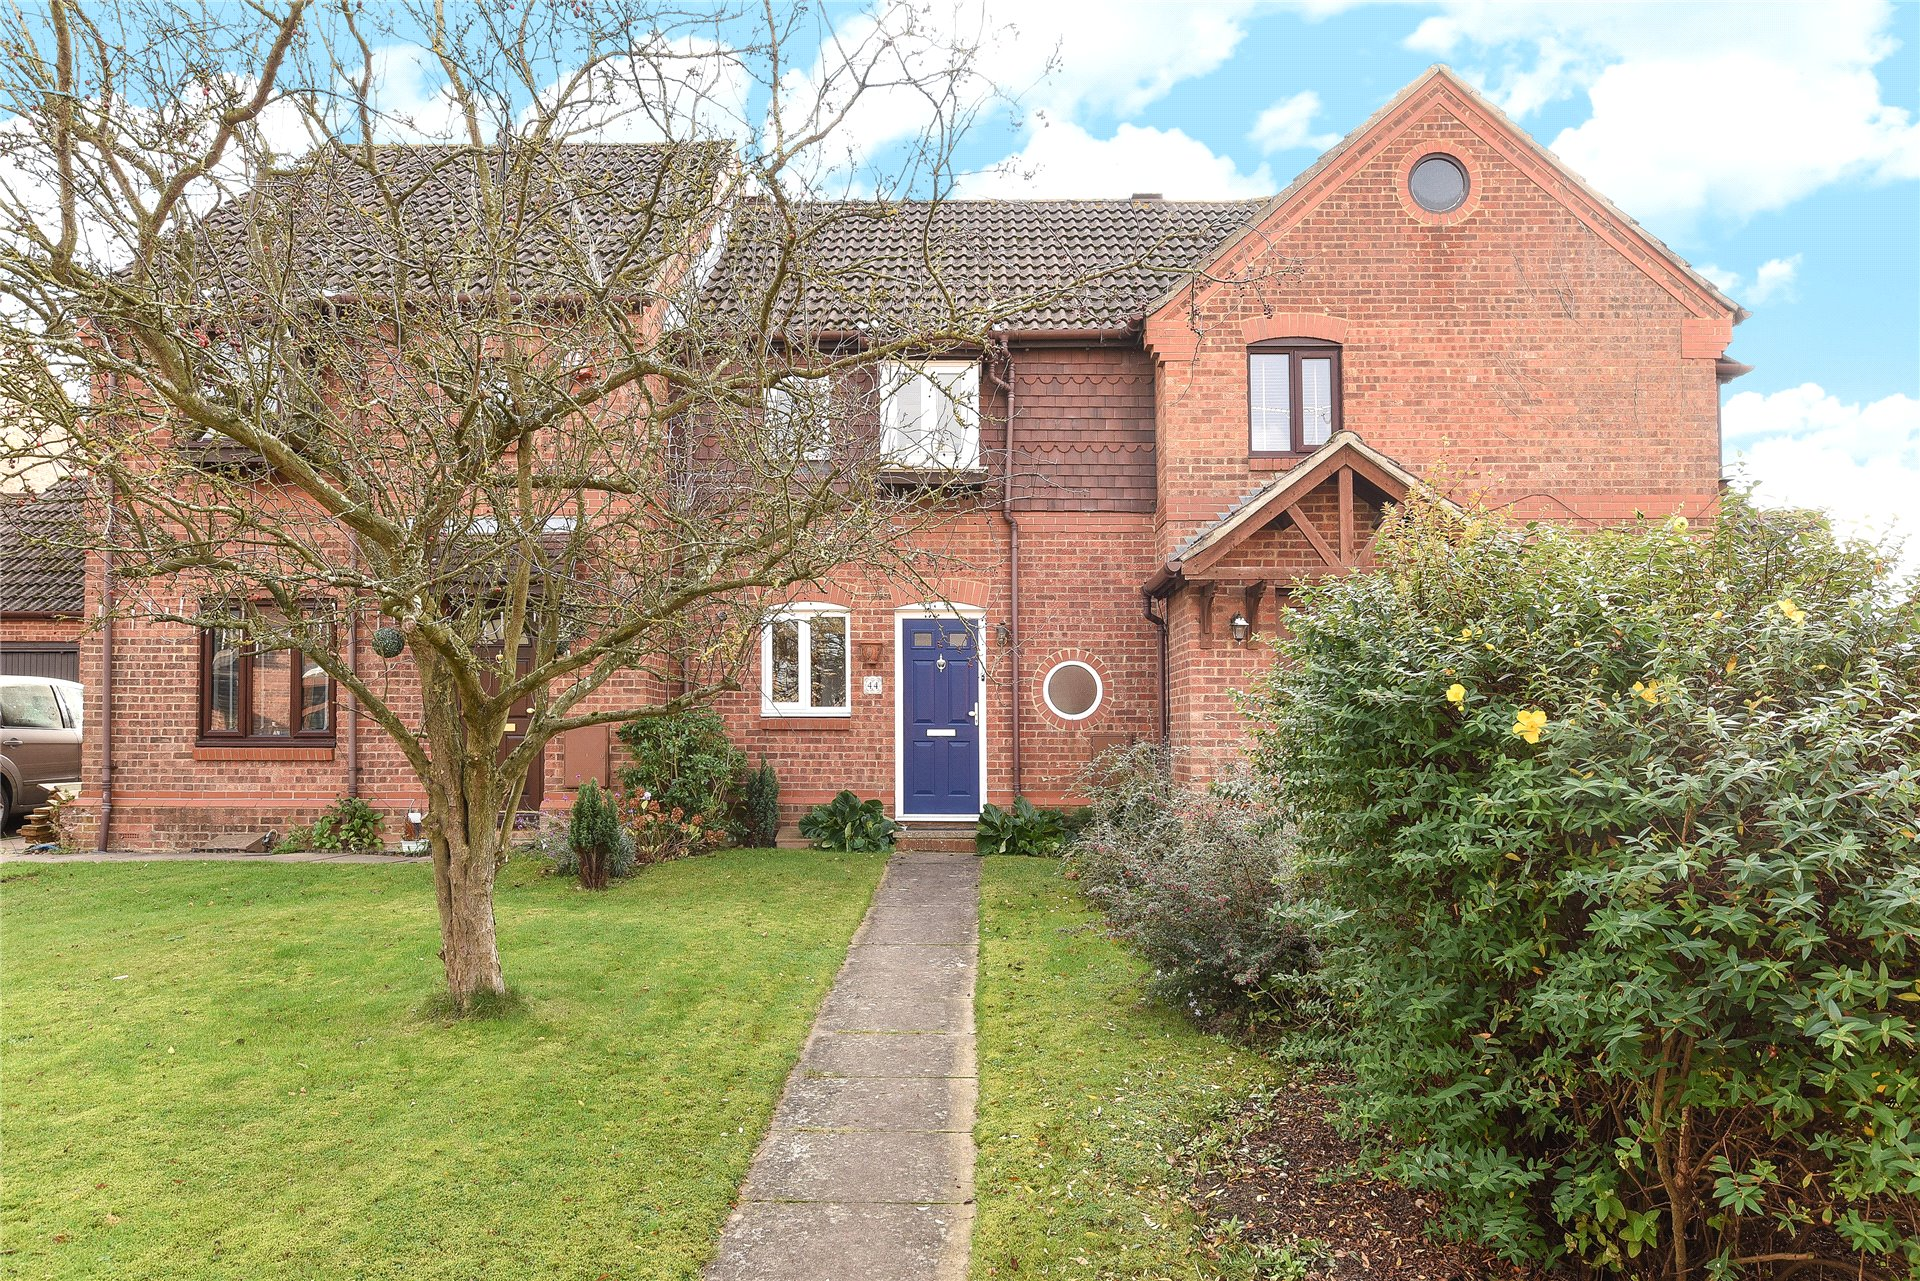 2 Bedrooms Terraced House for sale in Simkins Close, Winkfield Row, Berkshire, RG42